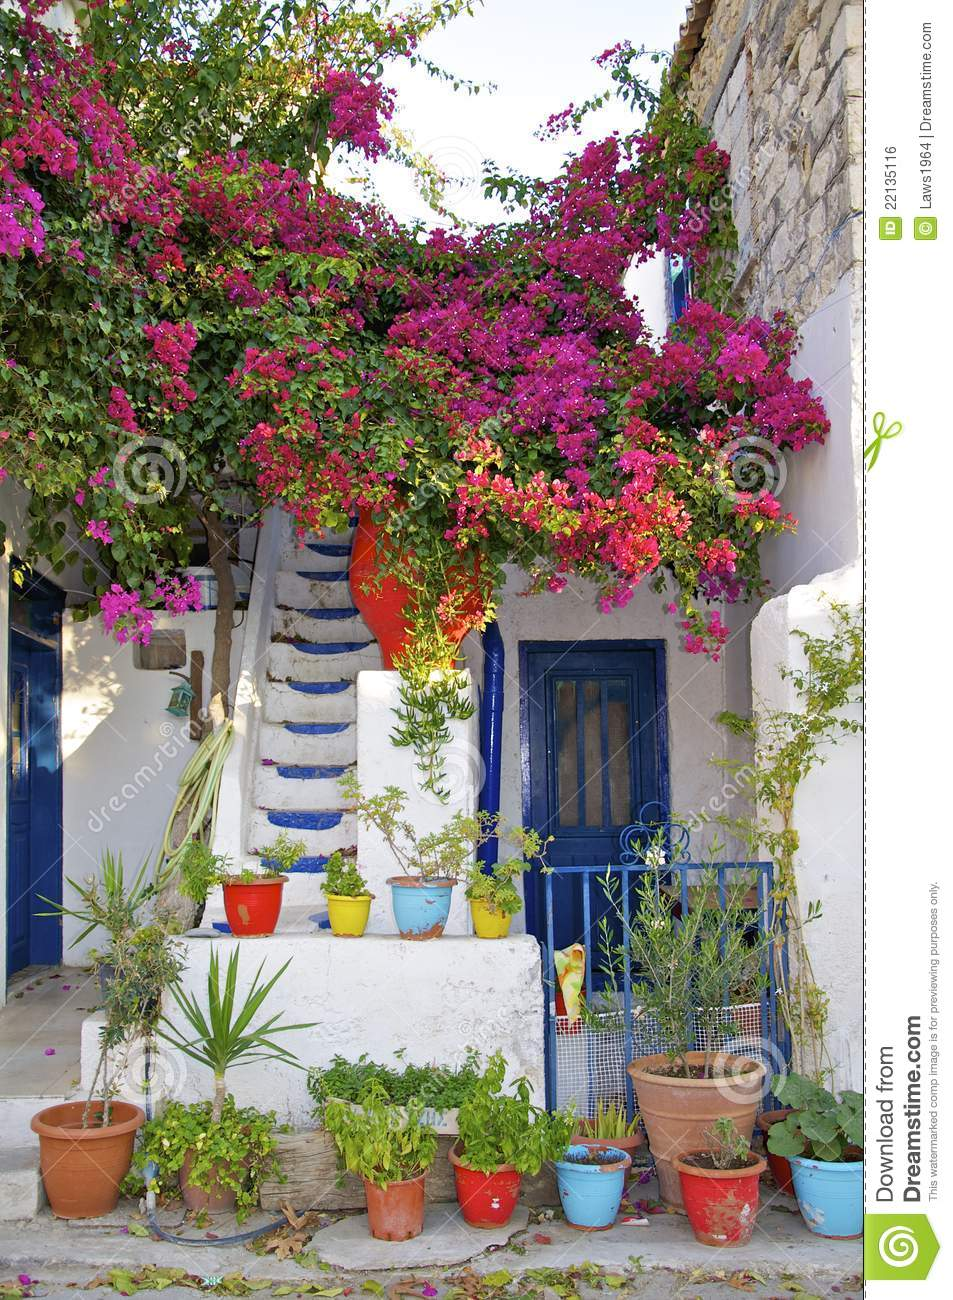 greek house full of flowers stock photo image of stairs